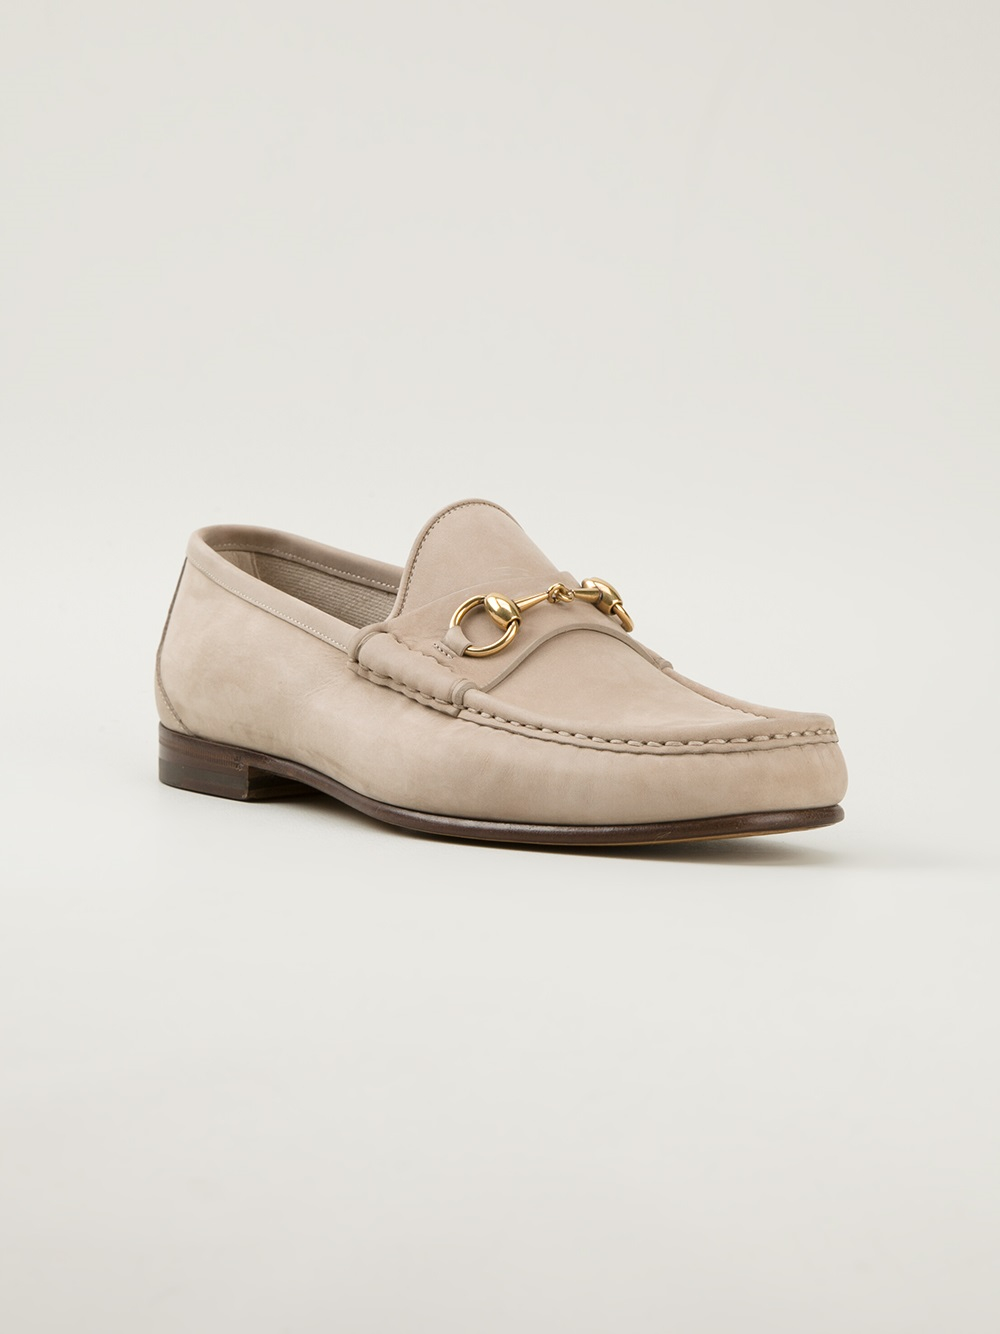 c6eb5c74f3d Lyst - Gucci Driving Loafers in Natural for Men